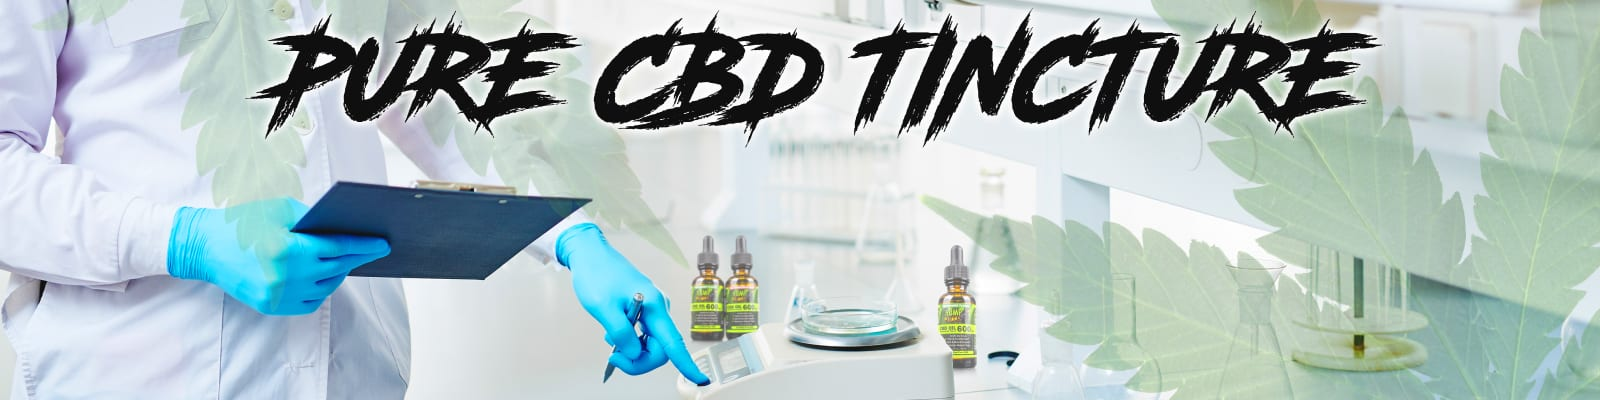 Pure CBD Tincture in a lab setting with a researcher pointing at a scale and three bottles of Pure CBD Tincture